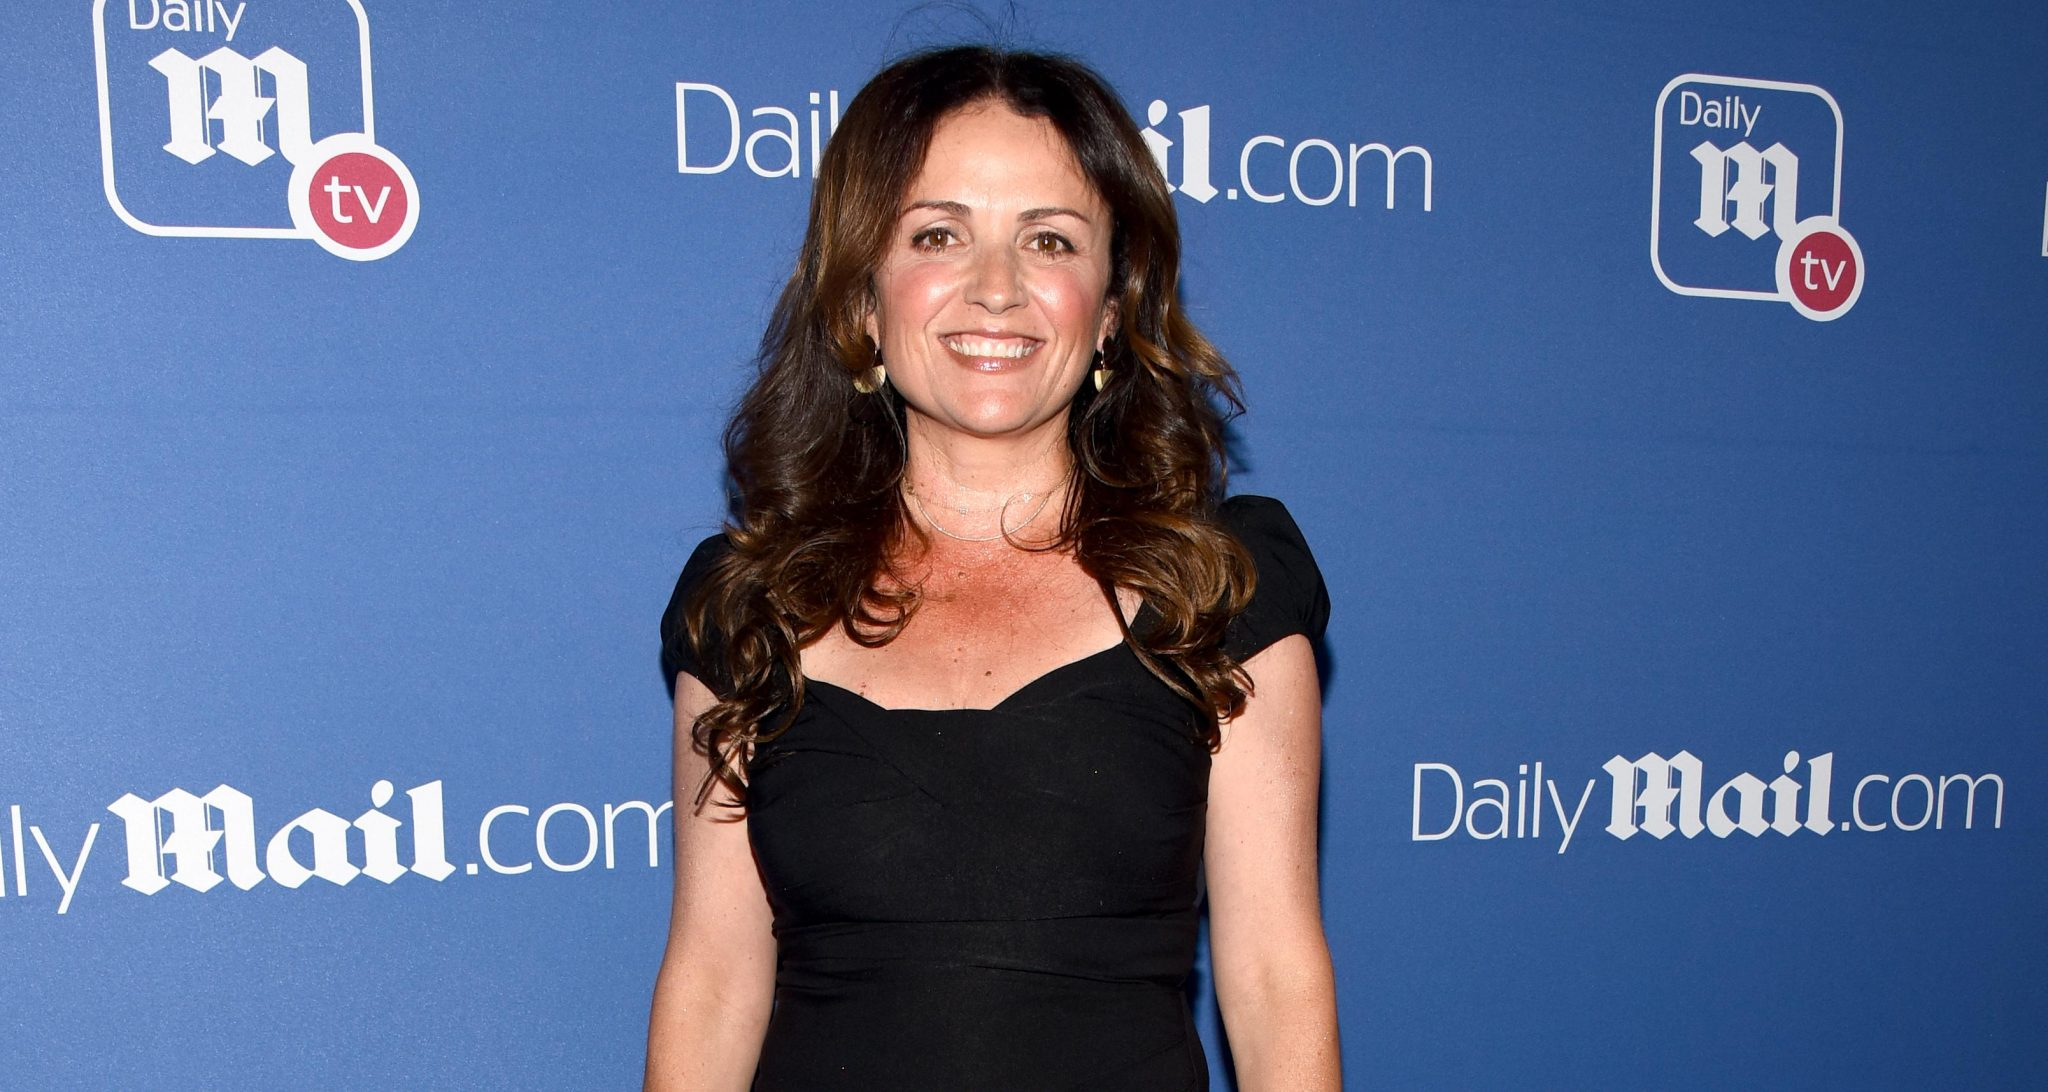 Jenni Pulos of 'Flipping Out' attends the DailyMail.com & DailyMailTV Summer Party at Tom Tom